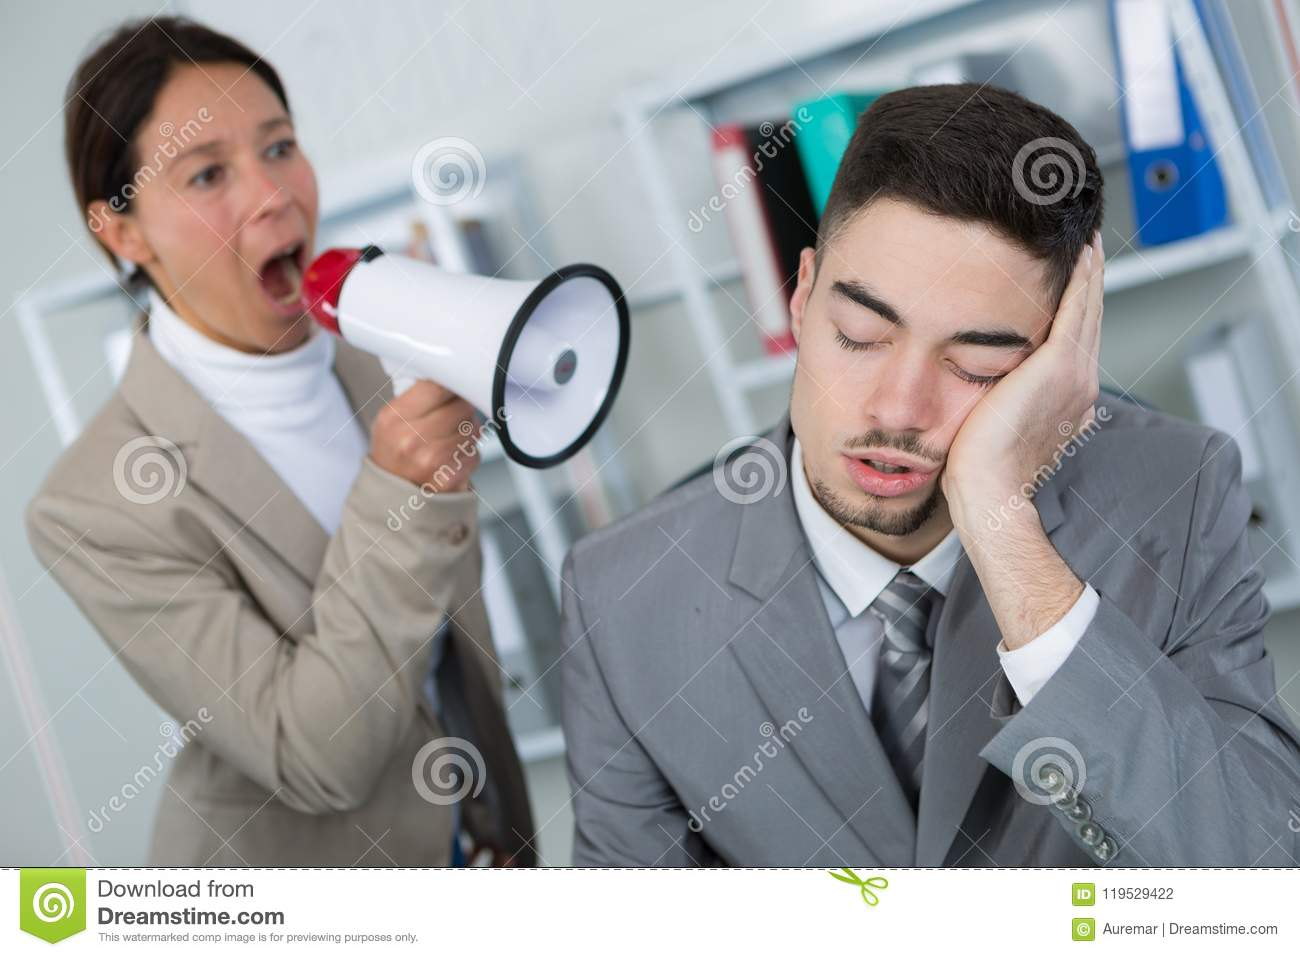 Businessman sleeping at workplace and businesswoman waking him up